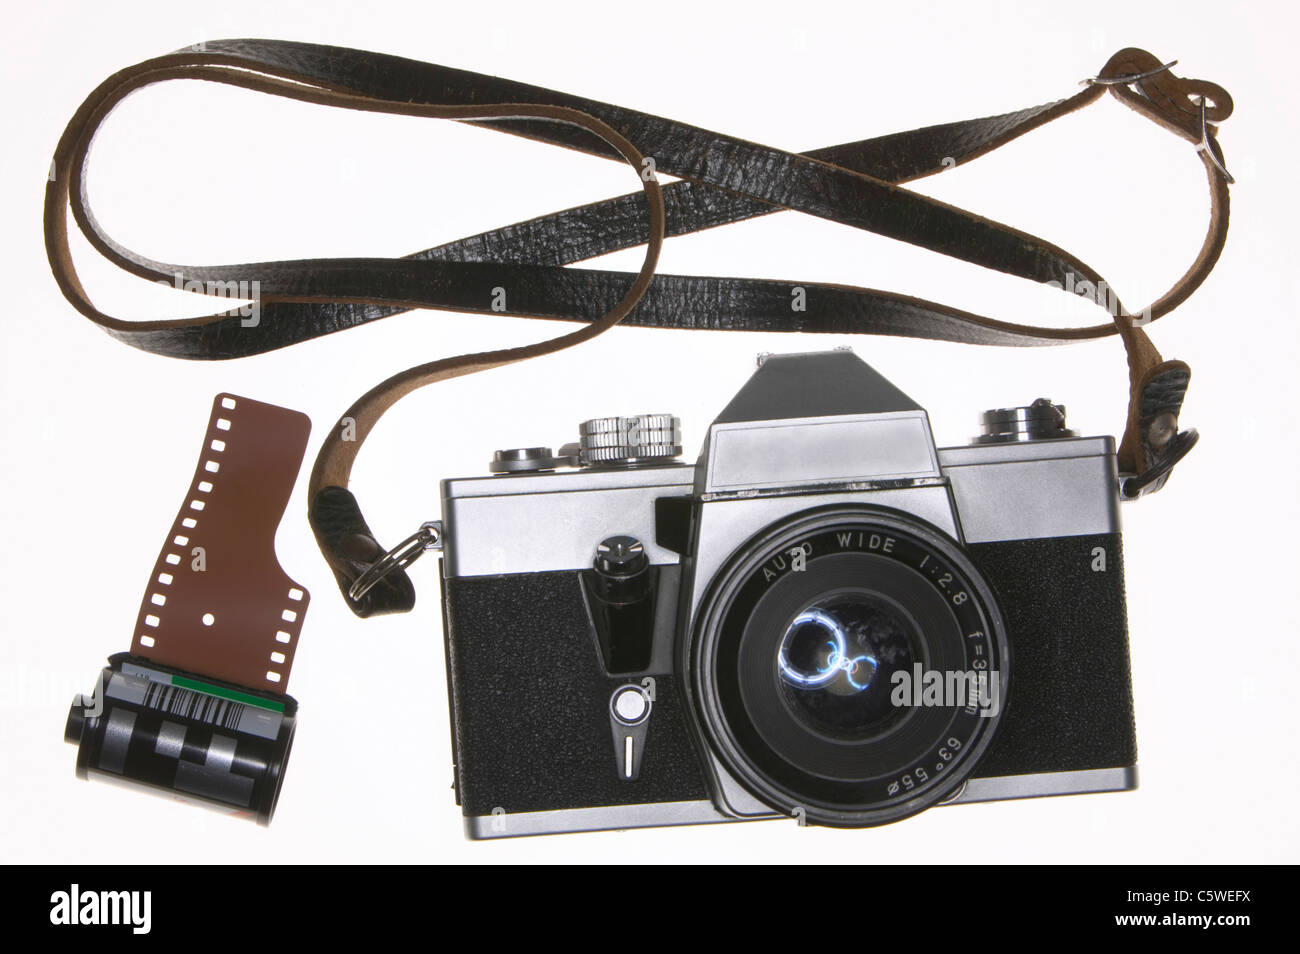 SLR camera, close-up - Stock Image